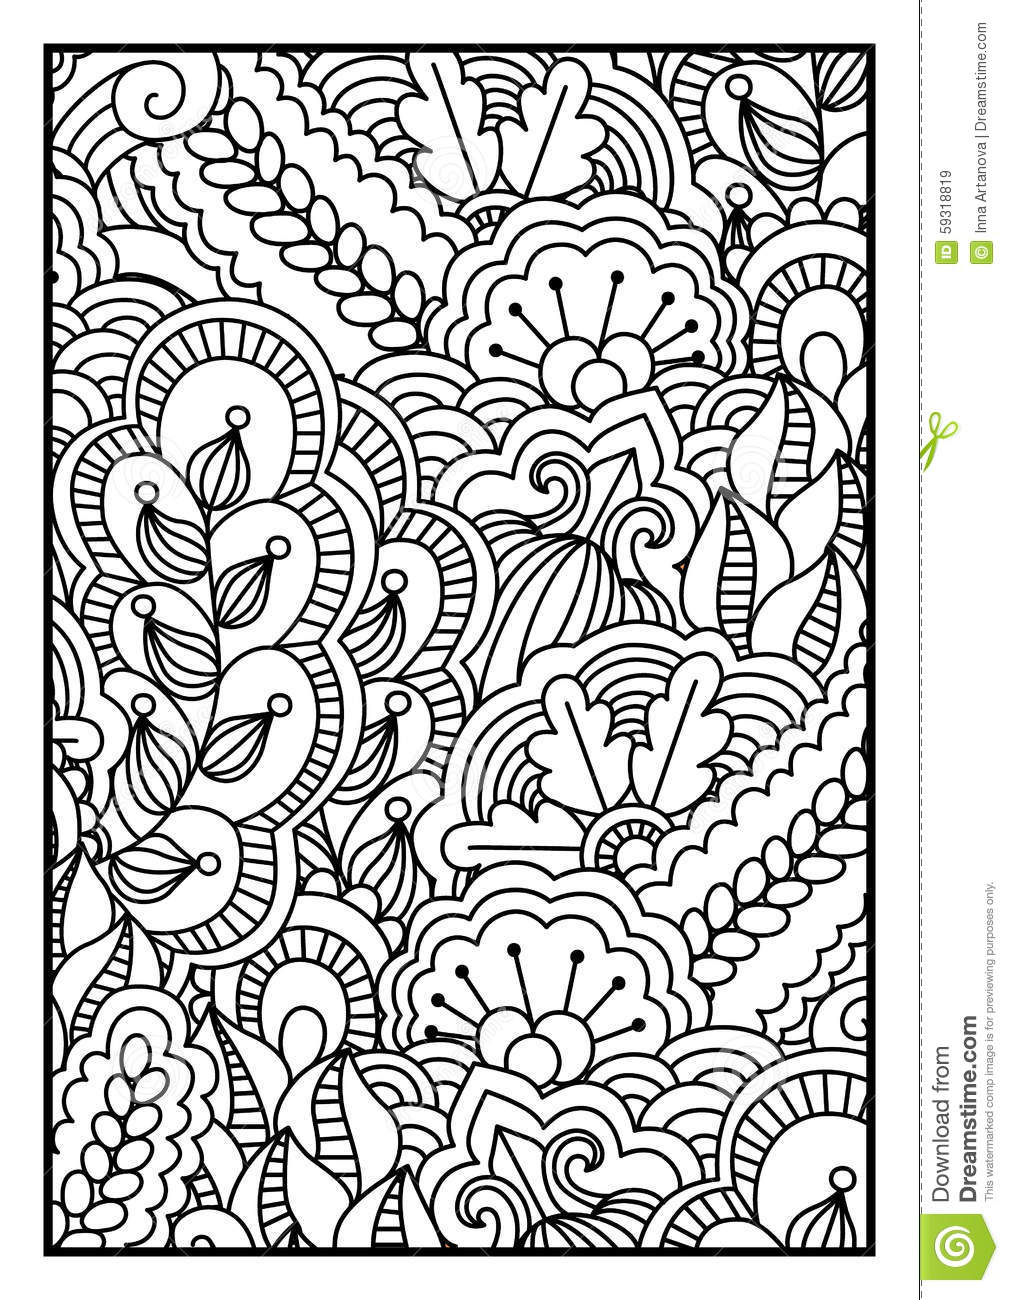 pattern for coloring book black and white background with floral ethnic hand drawn elements for design illustration 59318819 megapixl - Pattern Coloring Books